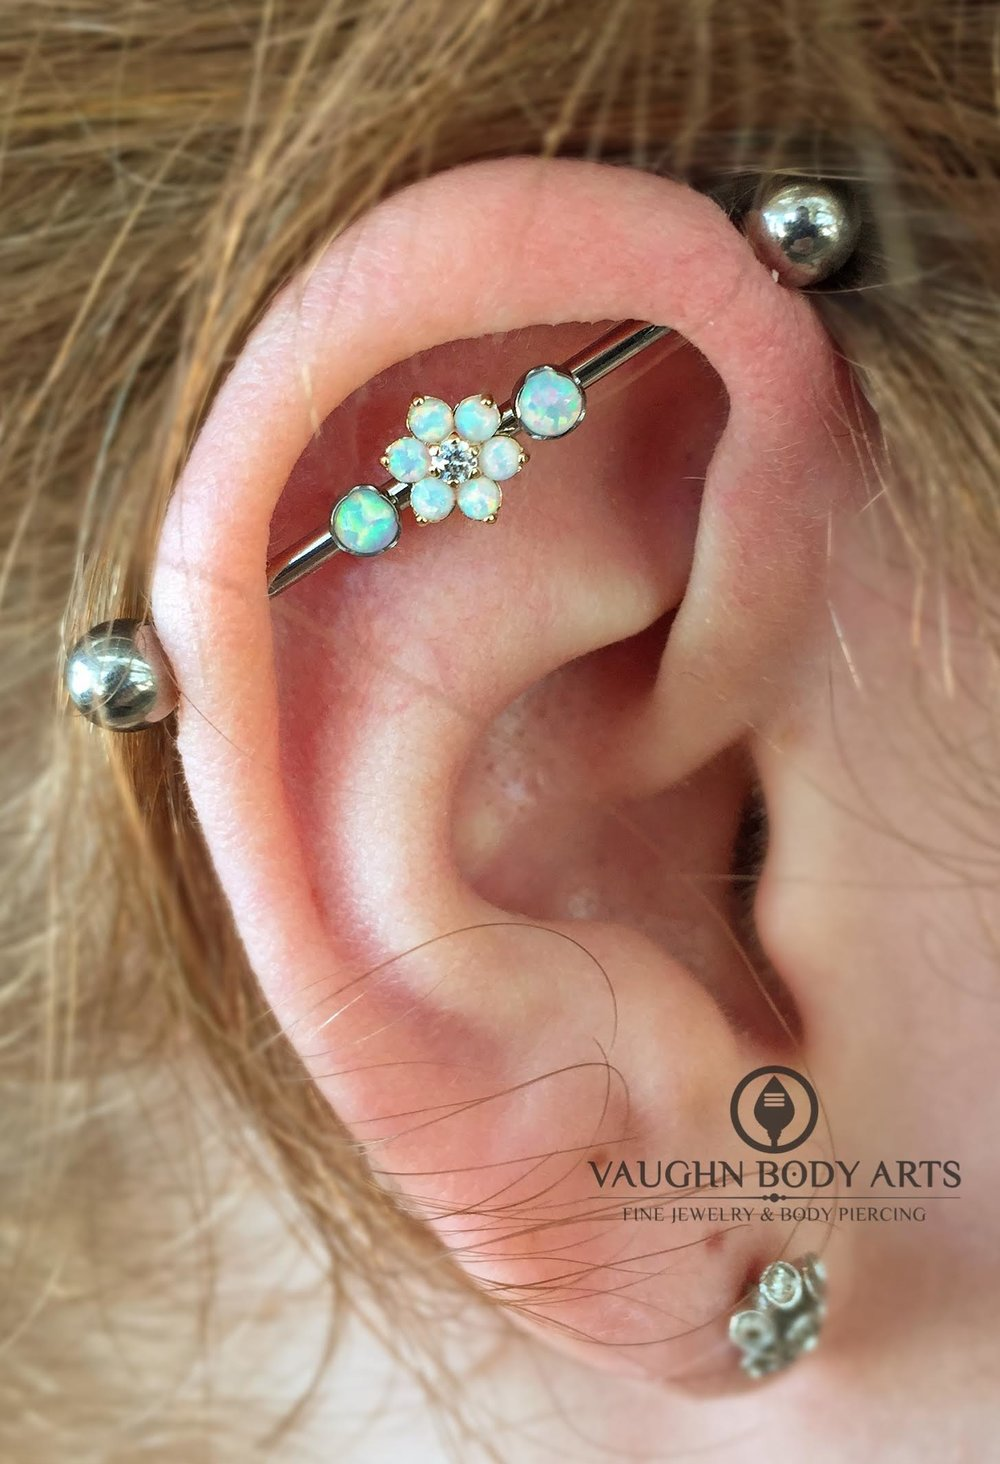 Industrial piercing with titanium jewelry from Anatometal featuring an 18k yellow gold flower in the center.